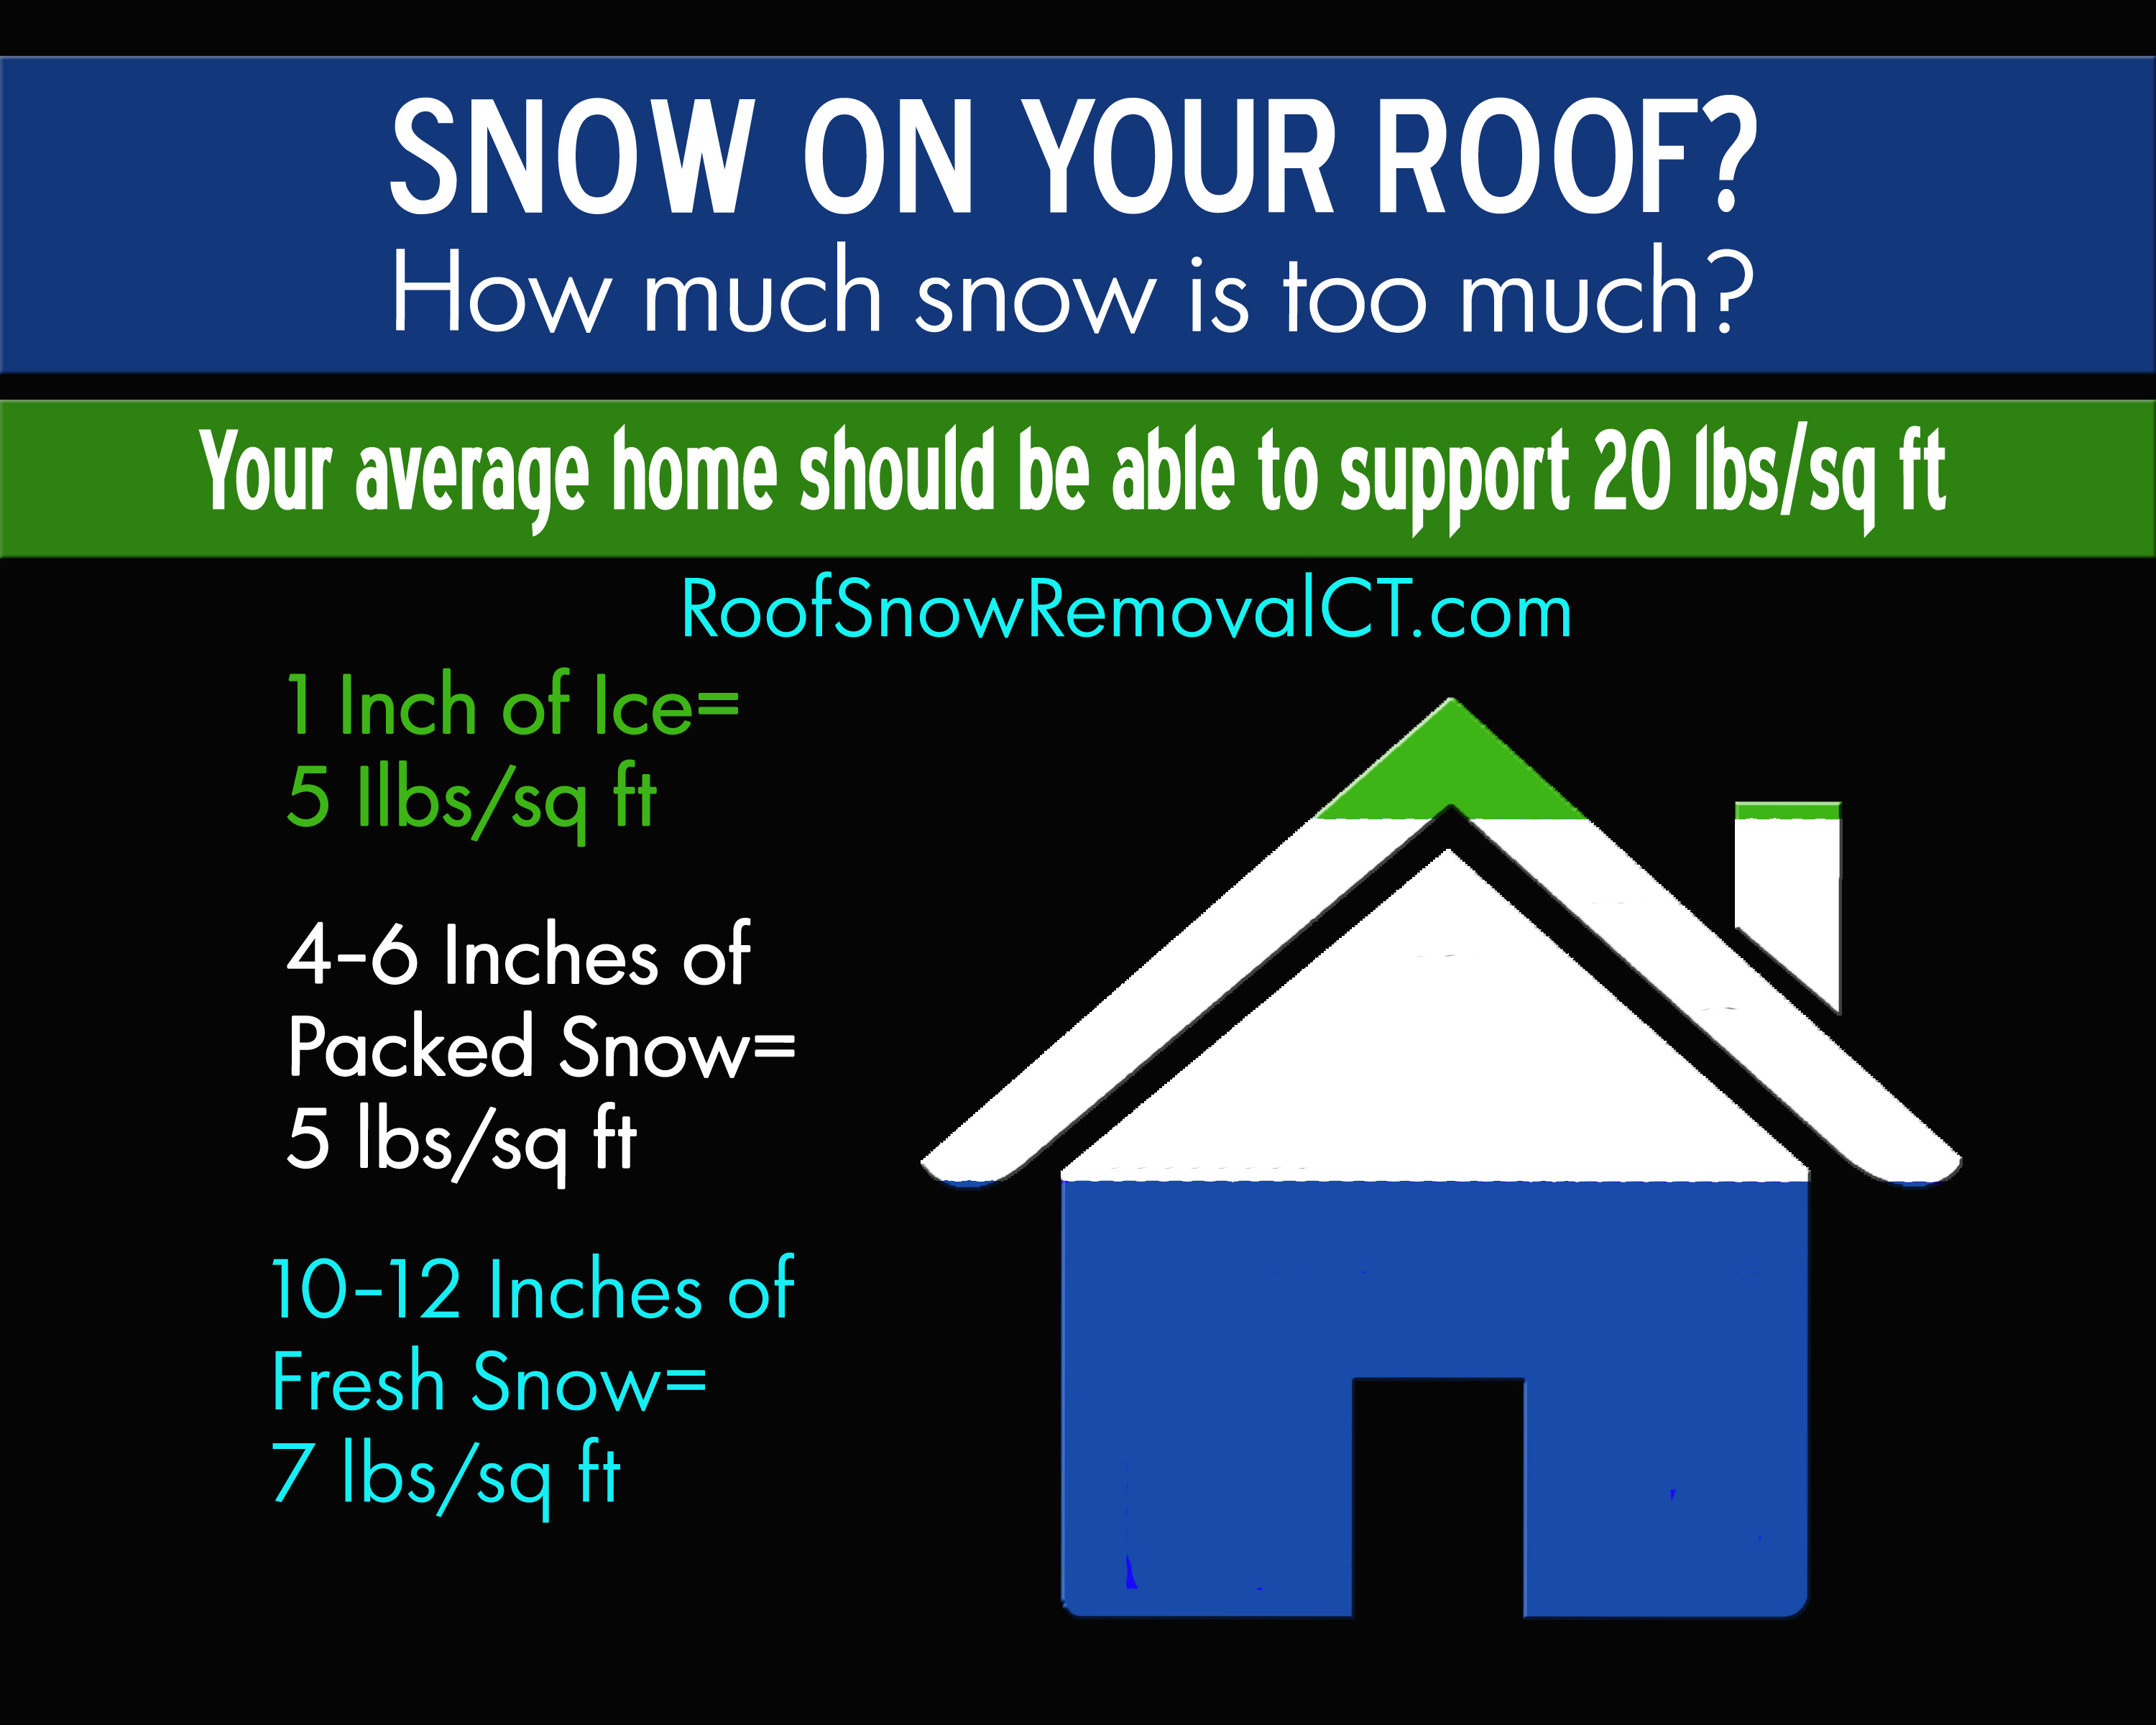 Roof Snow Removal Image indy